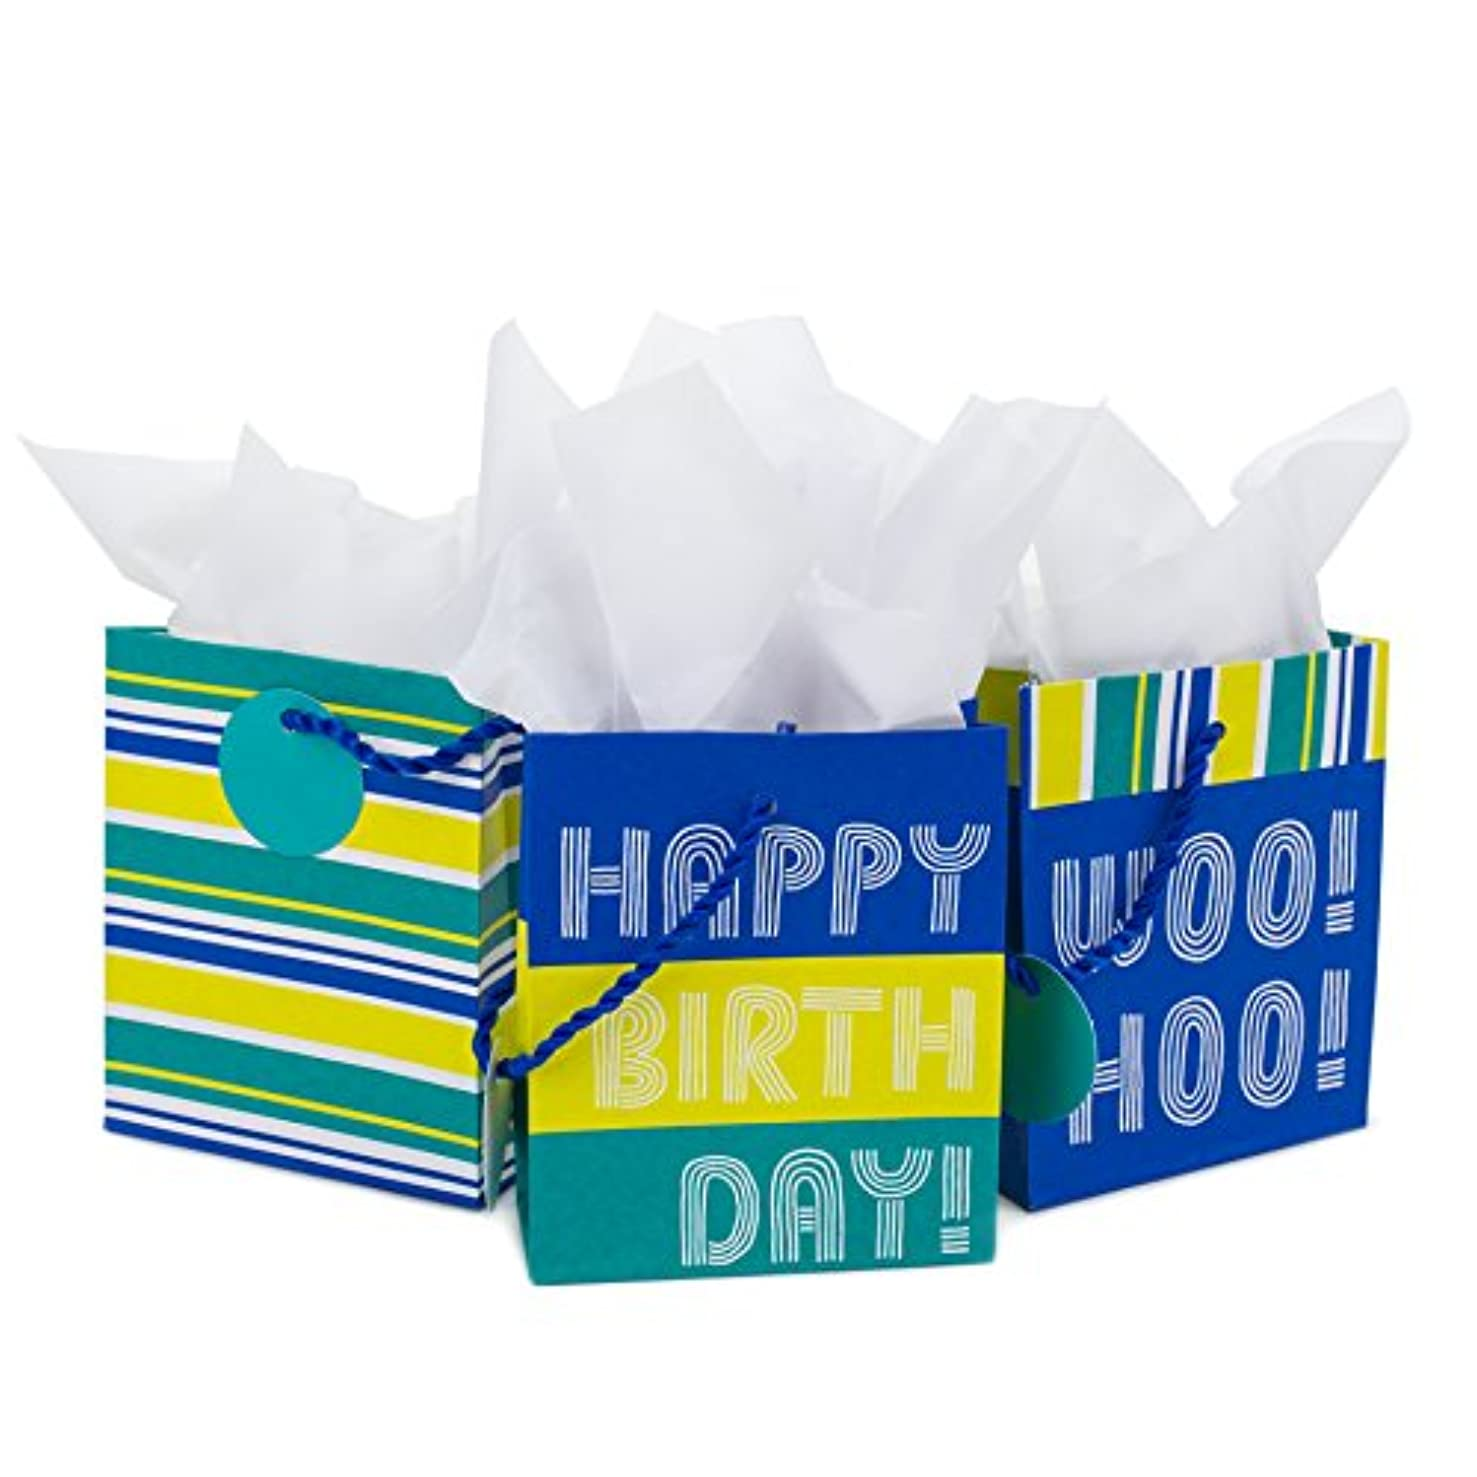 Hallmark Gift Card Holder for Birthdays, Graduations and More (3 Pack, Woo Hoo!)